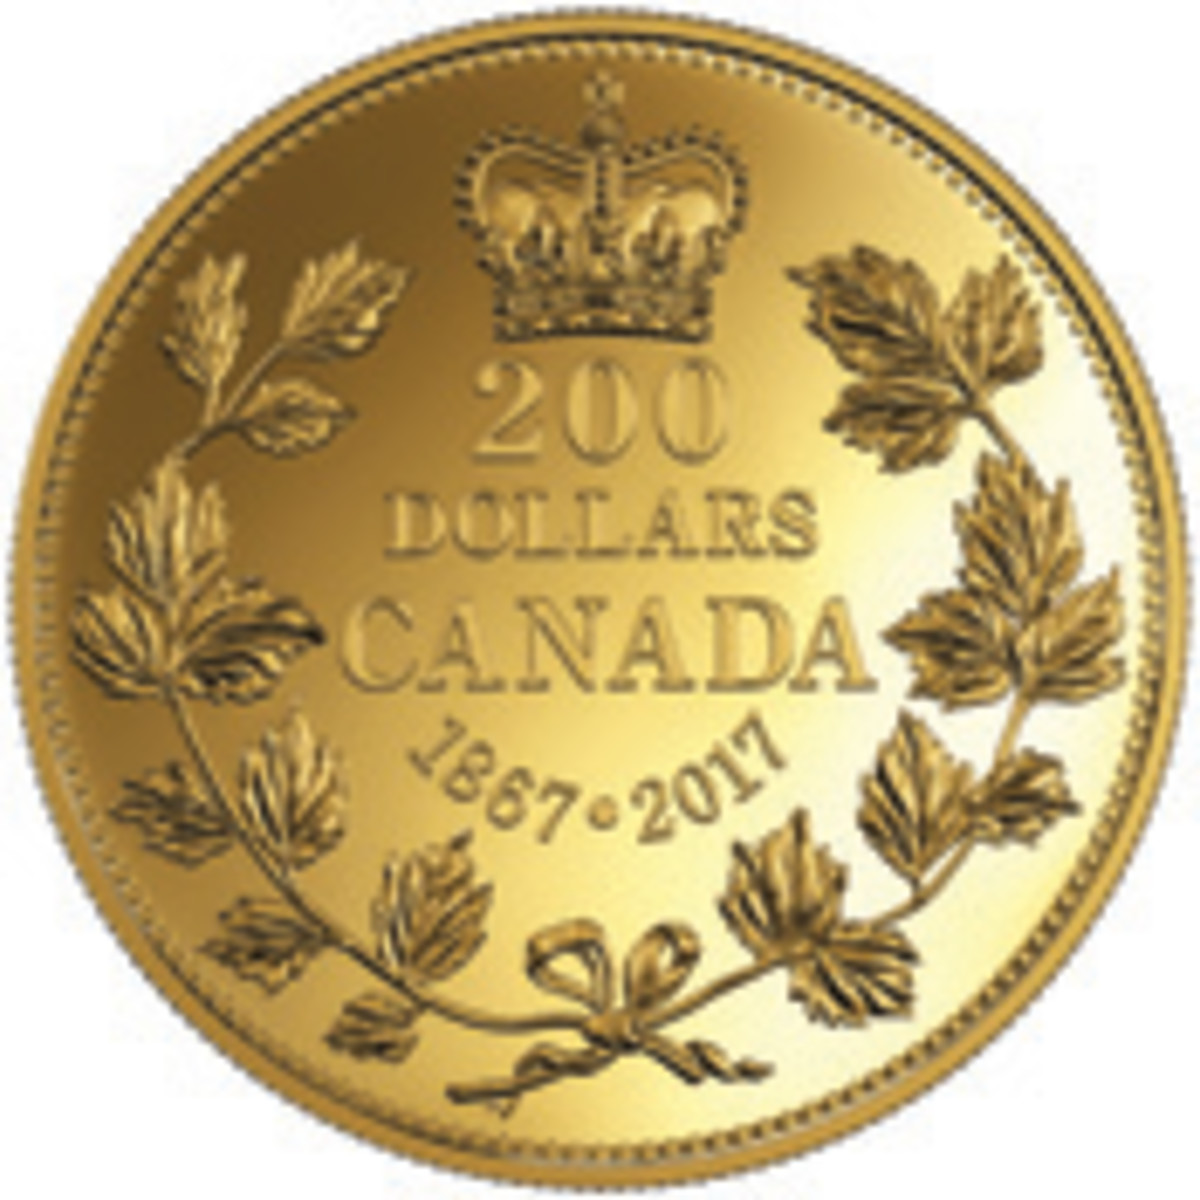 The first of Canada's 150th birthday celebratory coin: 30 mm, 31.6 g .9999 fine gold $200 proof. The reverse pays homage to a the common design that graced Canada's first circulation coins (KM-2 to KM-6).